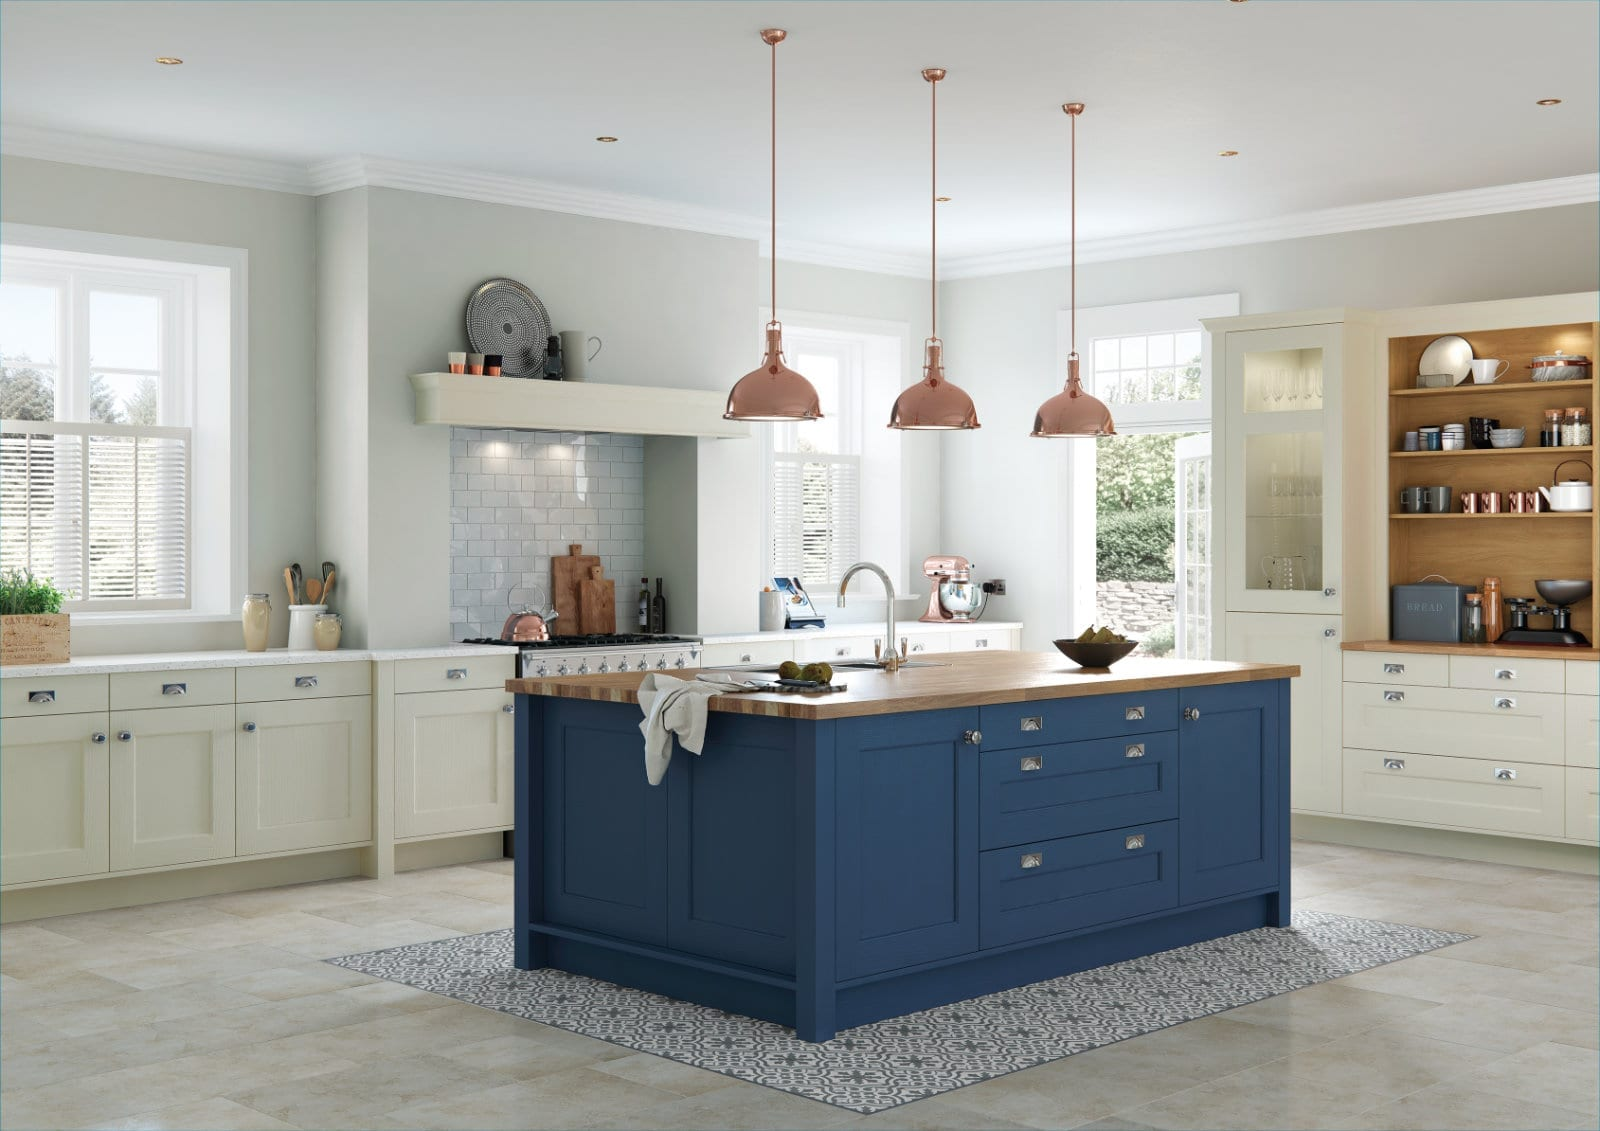 Alku Open Plan Traditional Shaker Kitchen With Island 1 | Unique Bedrooms Direct | Dunstable